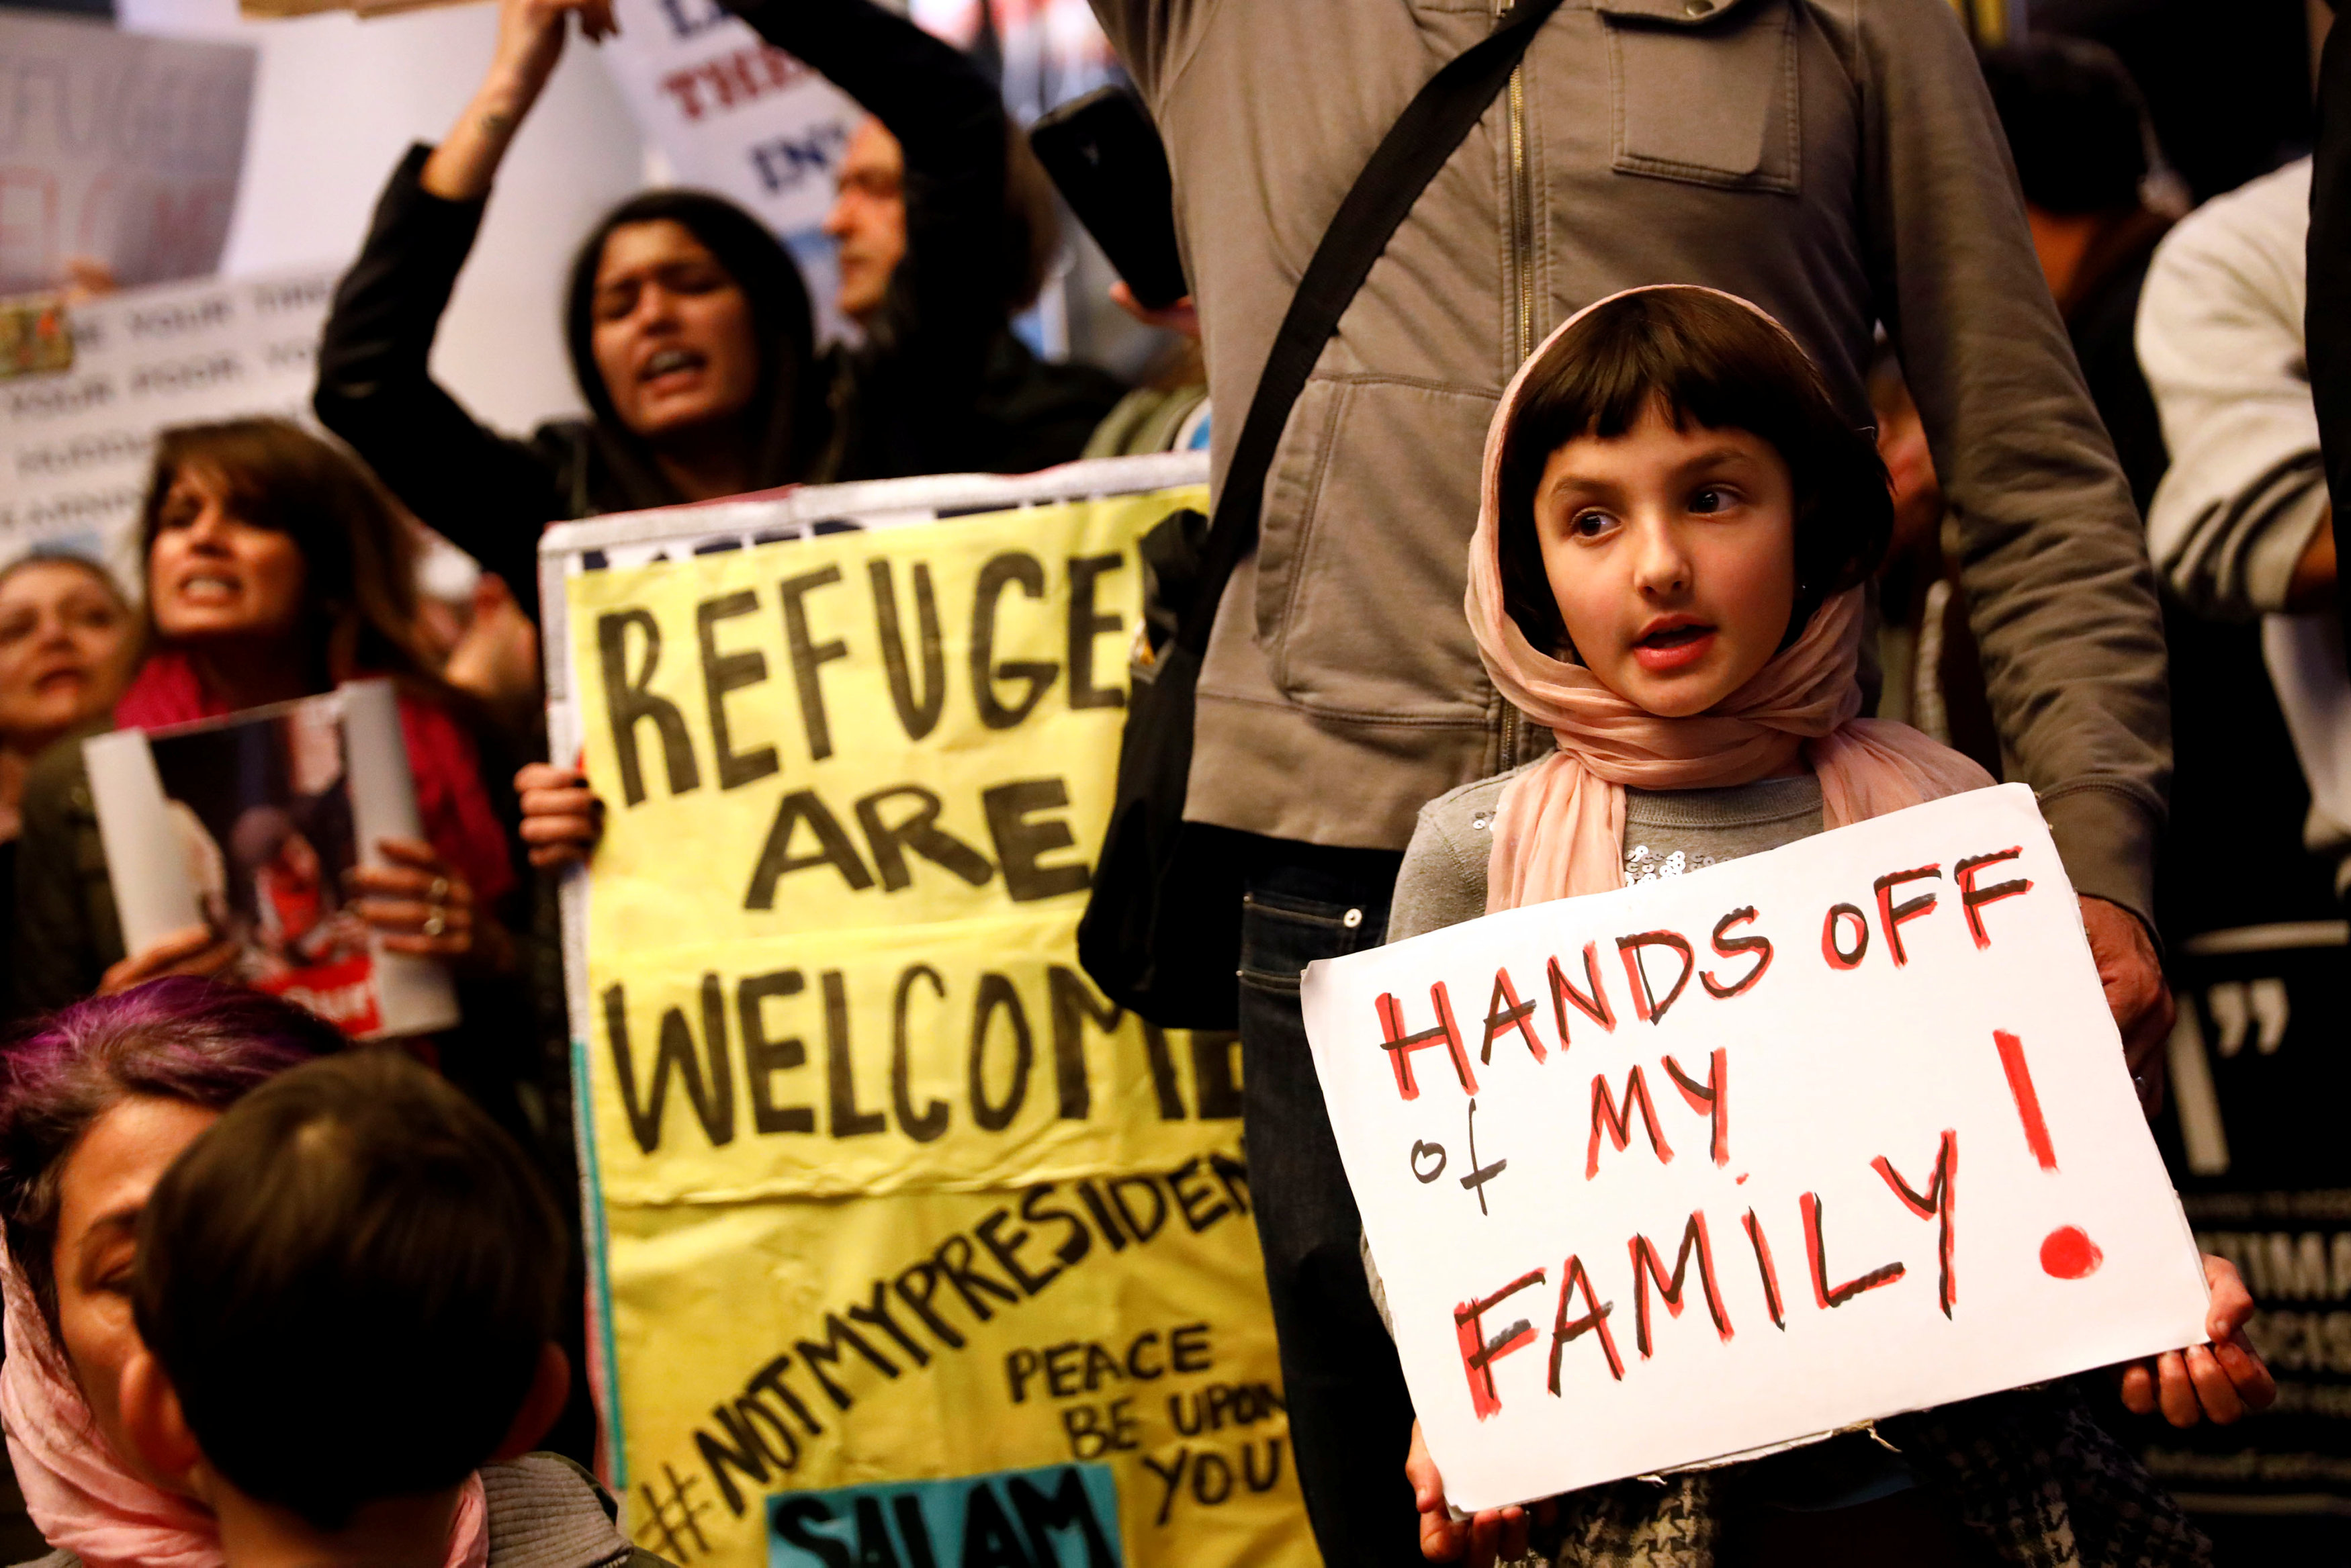 Rosalie Gurna, 9, holds a sign in support of Muslim family members as people protest against U.S. President Donald Trump's travel ban on Muslim majority countries, at the International terminal at Los Angeles International Airport (LAX) in Los Angeles, California, U.S., January 28, 2017. REUTERS/Patrick T. Fallon TPX IMAGES OF THE DAY *** Local Caption *** Rosalie Gurna, 9, memegang papan mendukung anggota keluarga Muslim saat warga memprotes larangan perjalanan Presiden Amerika Serikat Donald Trump kepada negara-negara mayoritas Muslim di terminal internasional di Bandara Internasional Los Angeles (LAX) di Los Angeles, California, Amerika Serikat, Sabtu (28/1). ANTARA FOTO/REUTERS/Patrick T. Fallon/cfo/17